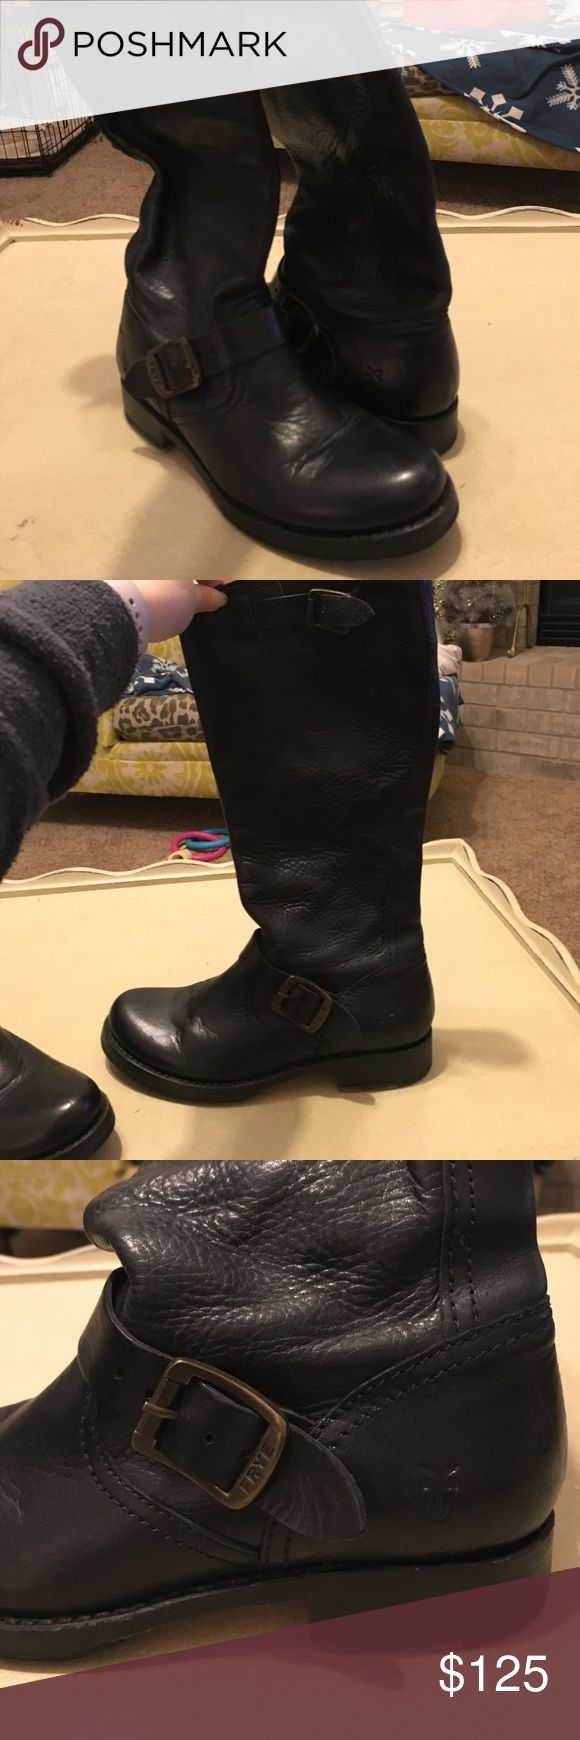 Frye Veronica Slouch size 6.5 Black These are the Frye Veronica slouch in black size 6.5.  They are in great condition. I'm a size 5.5 and these were just a little big so they could definitely fit a 6.  In the left boot a very small part of the insole has come up. Frye Shoes Combat & Moto Boots